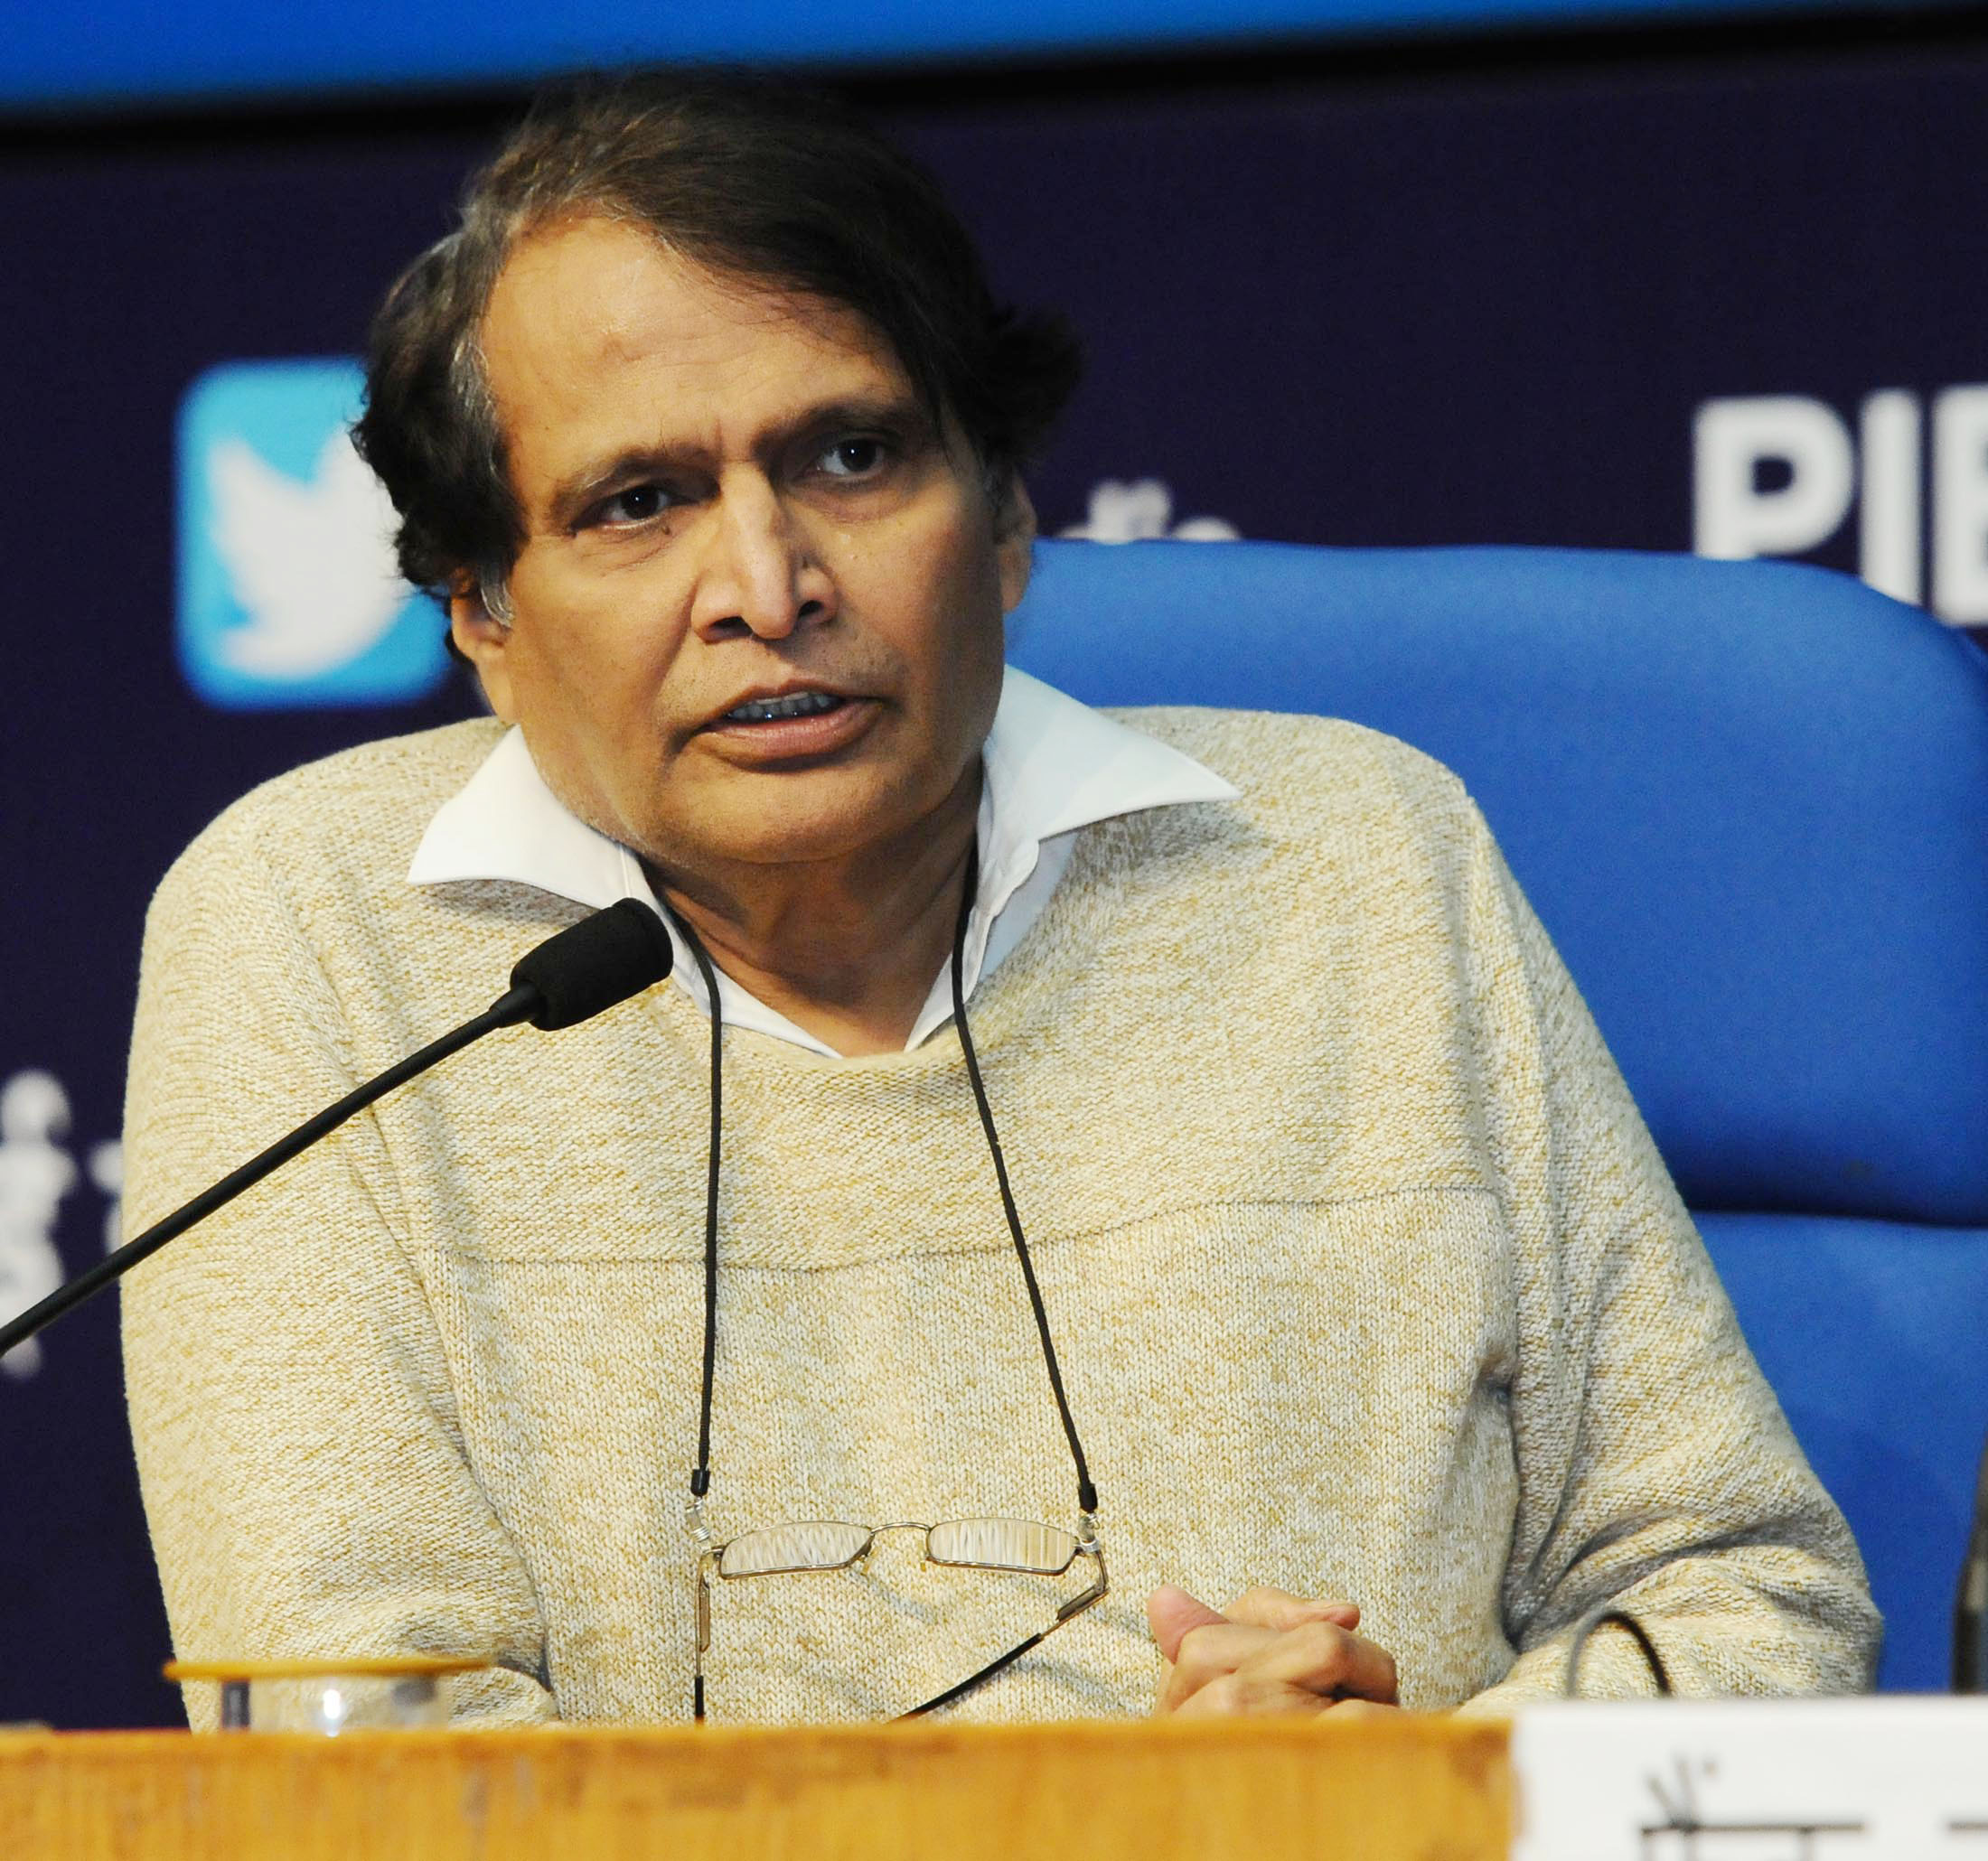 The Union Minister for Commerce & Industry, Shri Suresh Prabhakar Prabhu holding a Press Conference on the 3rd meeting of Council for Trade Development and Promotion, in New Delhi on January 08, 2018.